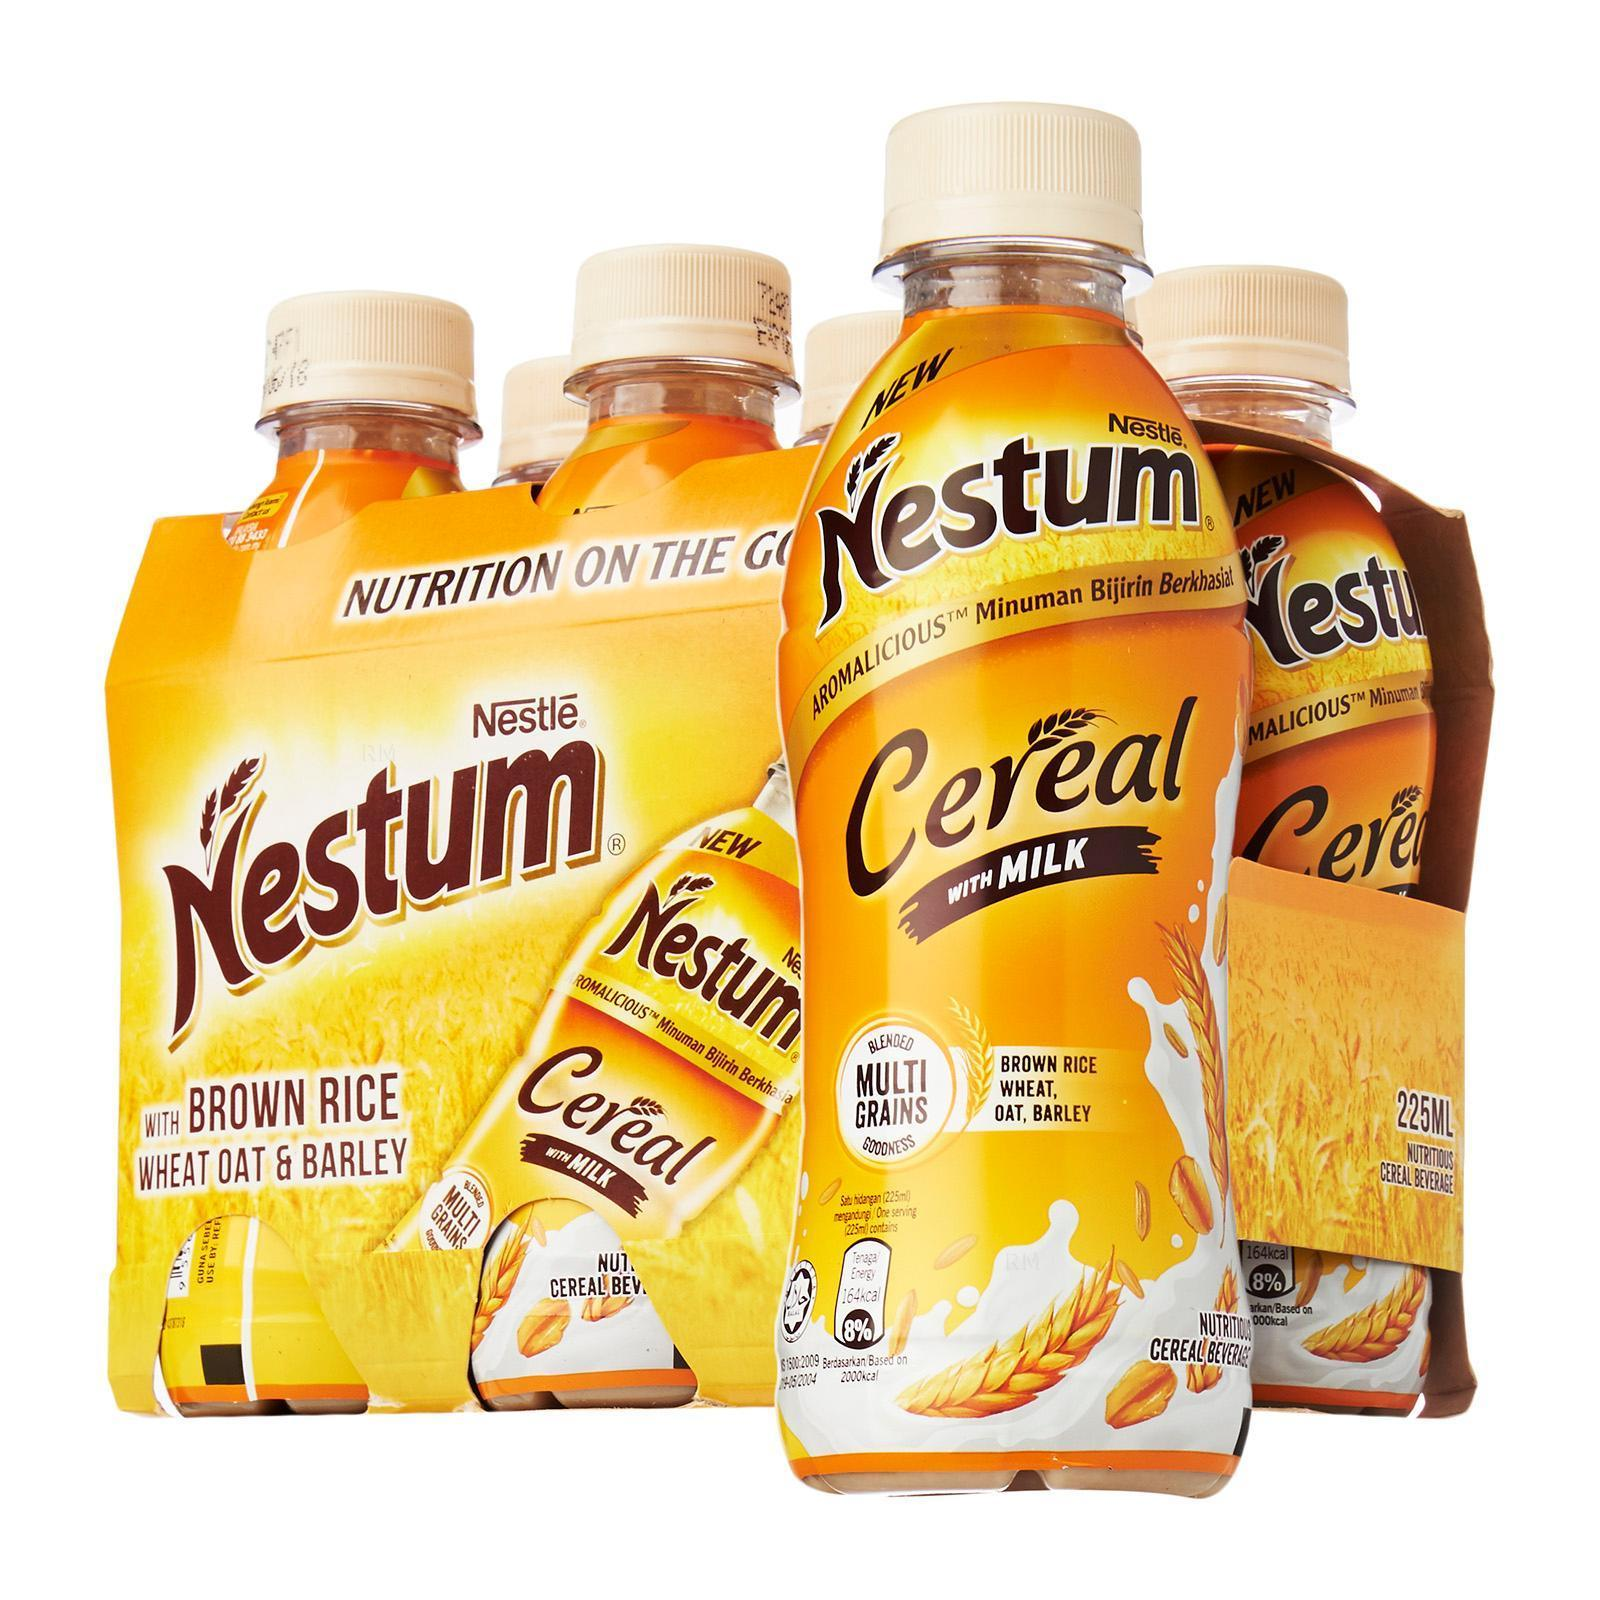 Nestum Cereal With Milk Bottle Drink By Redmart.